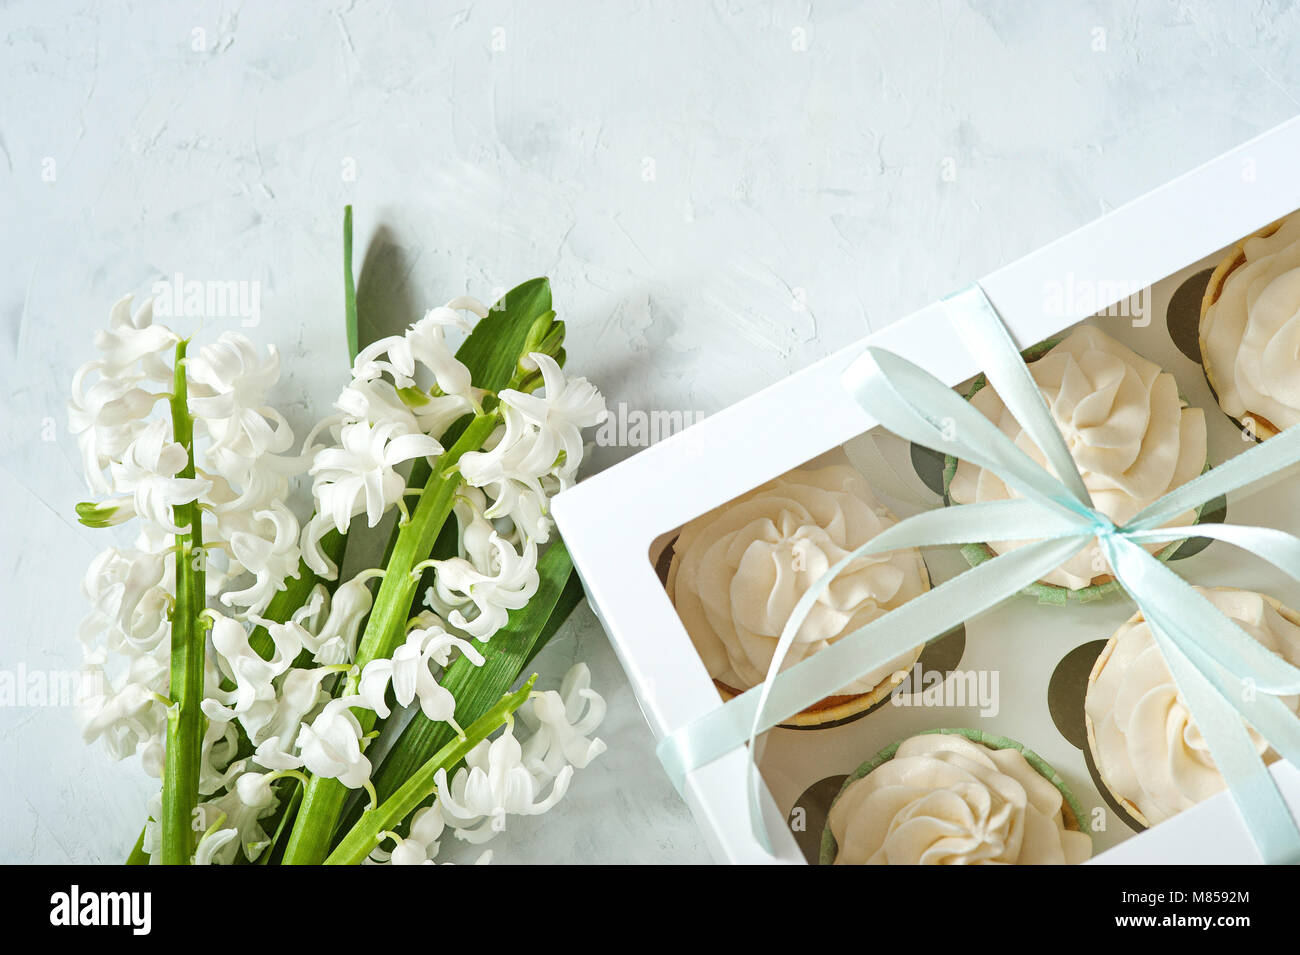 Gift Box And White Flowers On Rustic Table For March 8